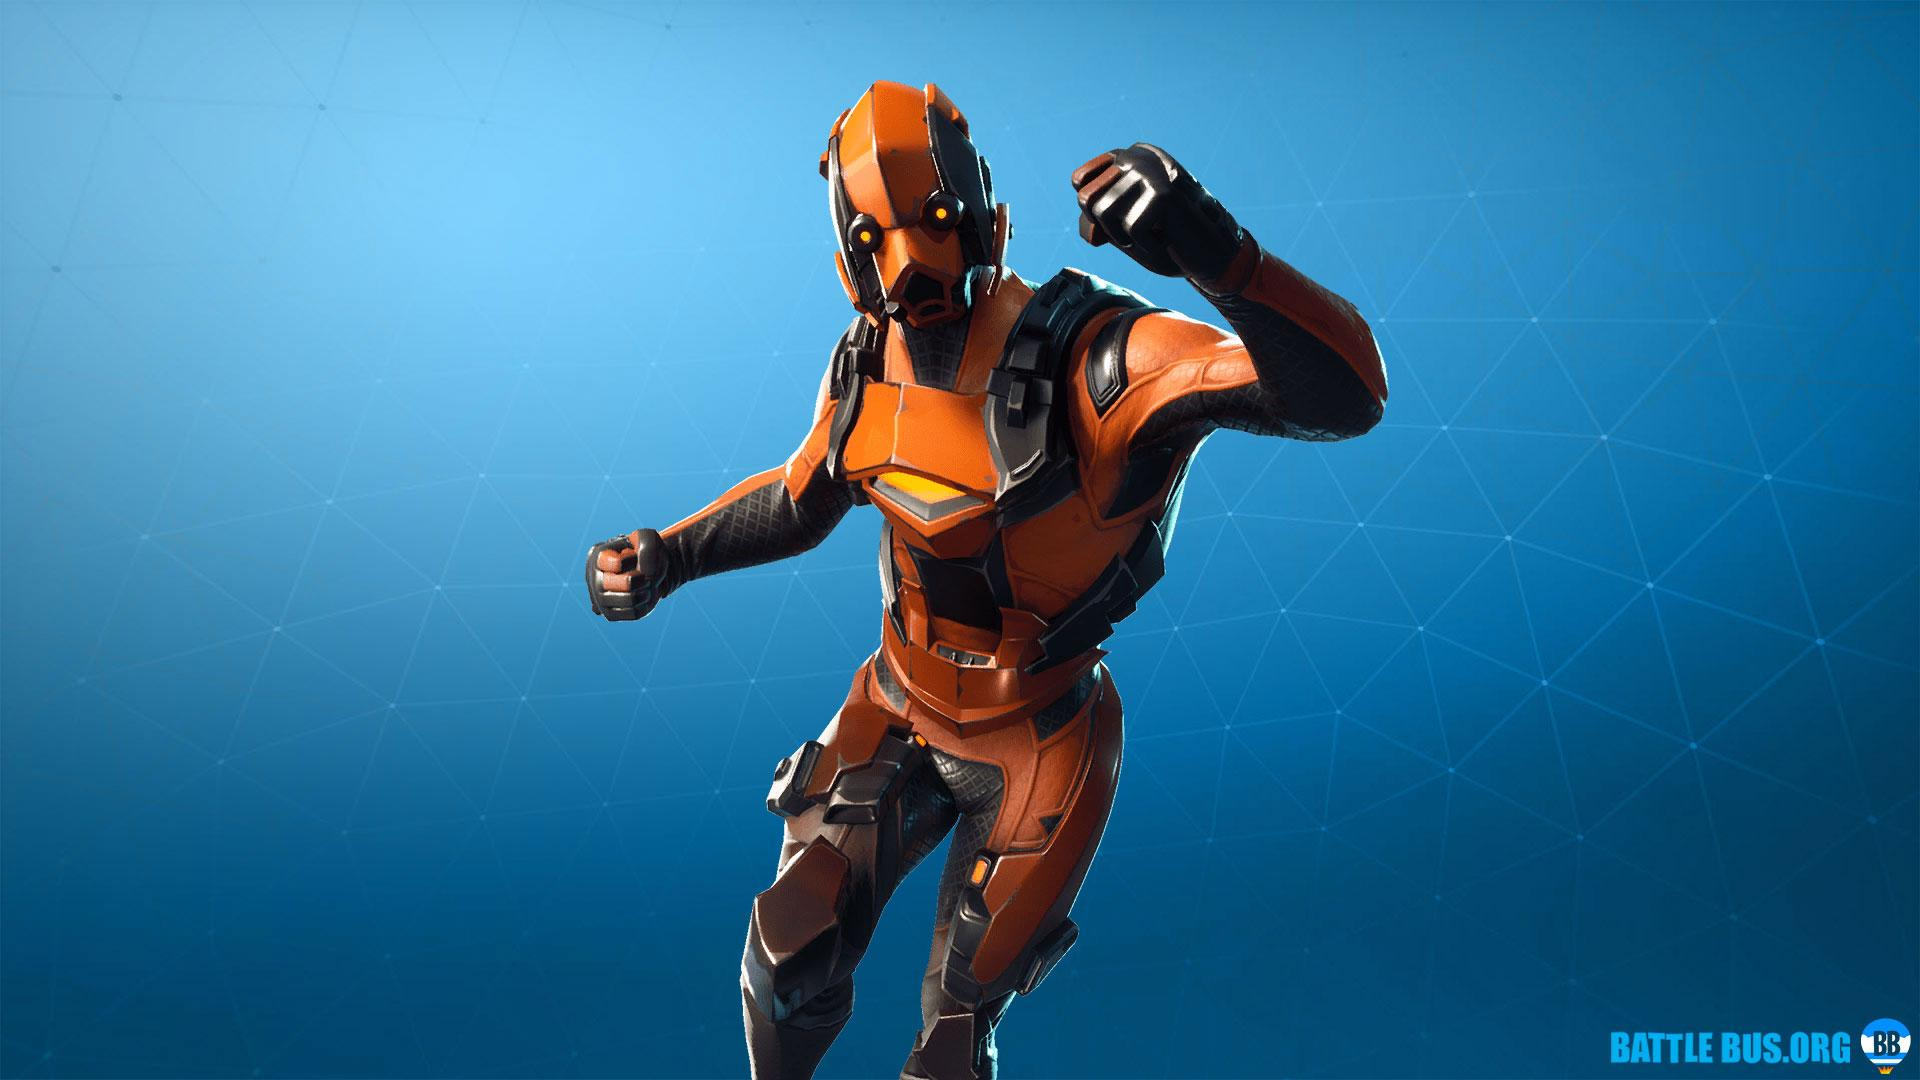 Vertex Outfit - Fortnite News, Skins, Settings, Updates